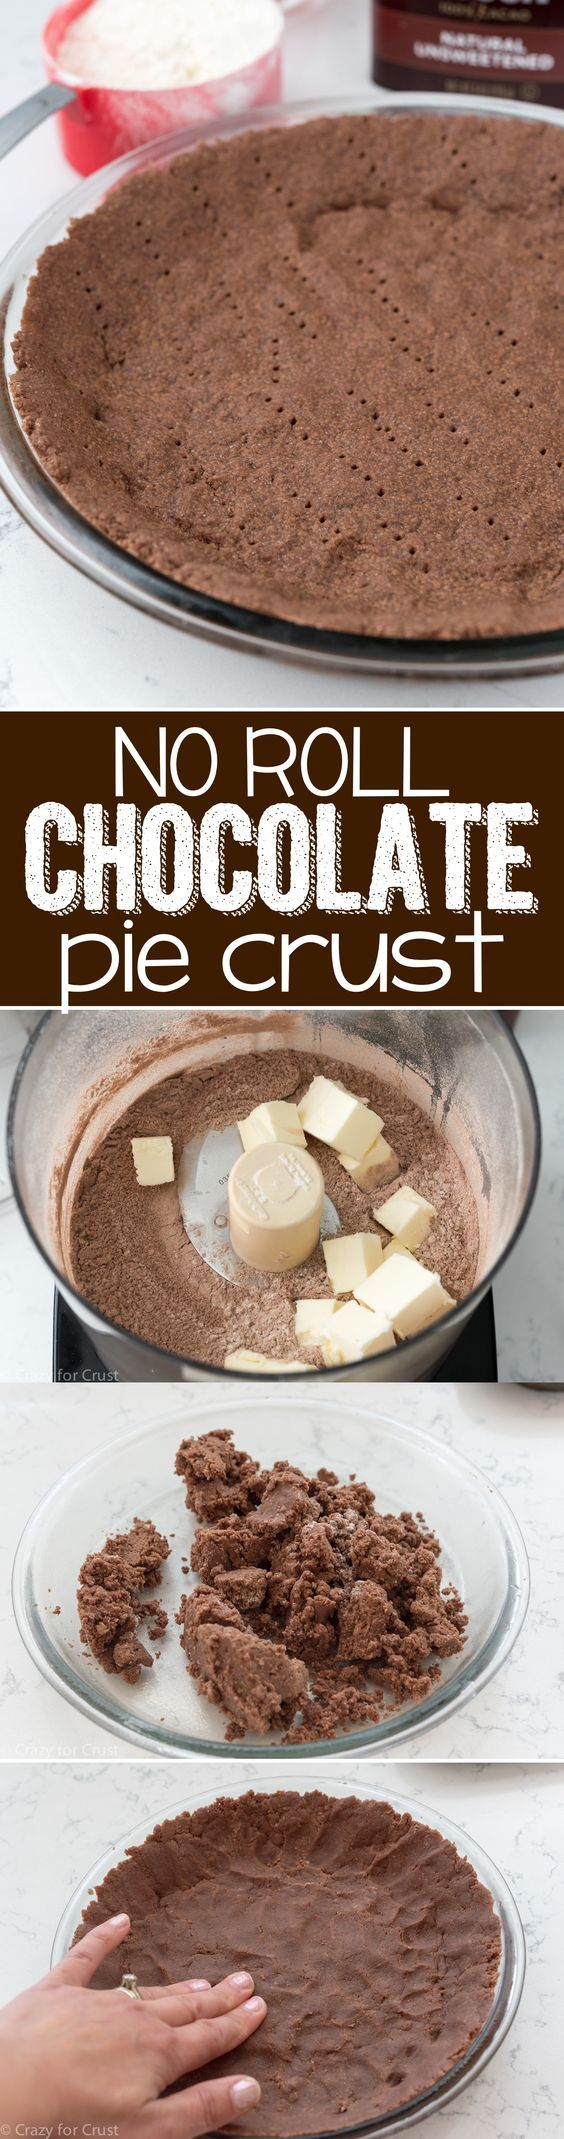 No Roll Chocolate Pie Crust - an easy pie crust recipe that's CHOCOLATE! Just mix it up in a food processor and press it into the pan  no rolling! It's great for baked or filled pies!